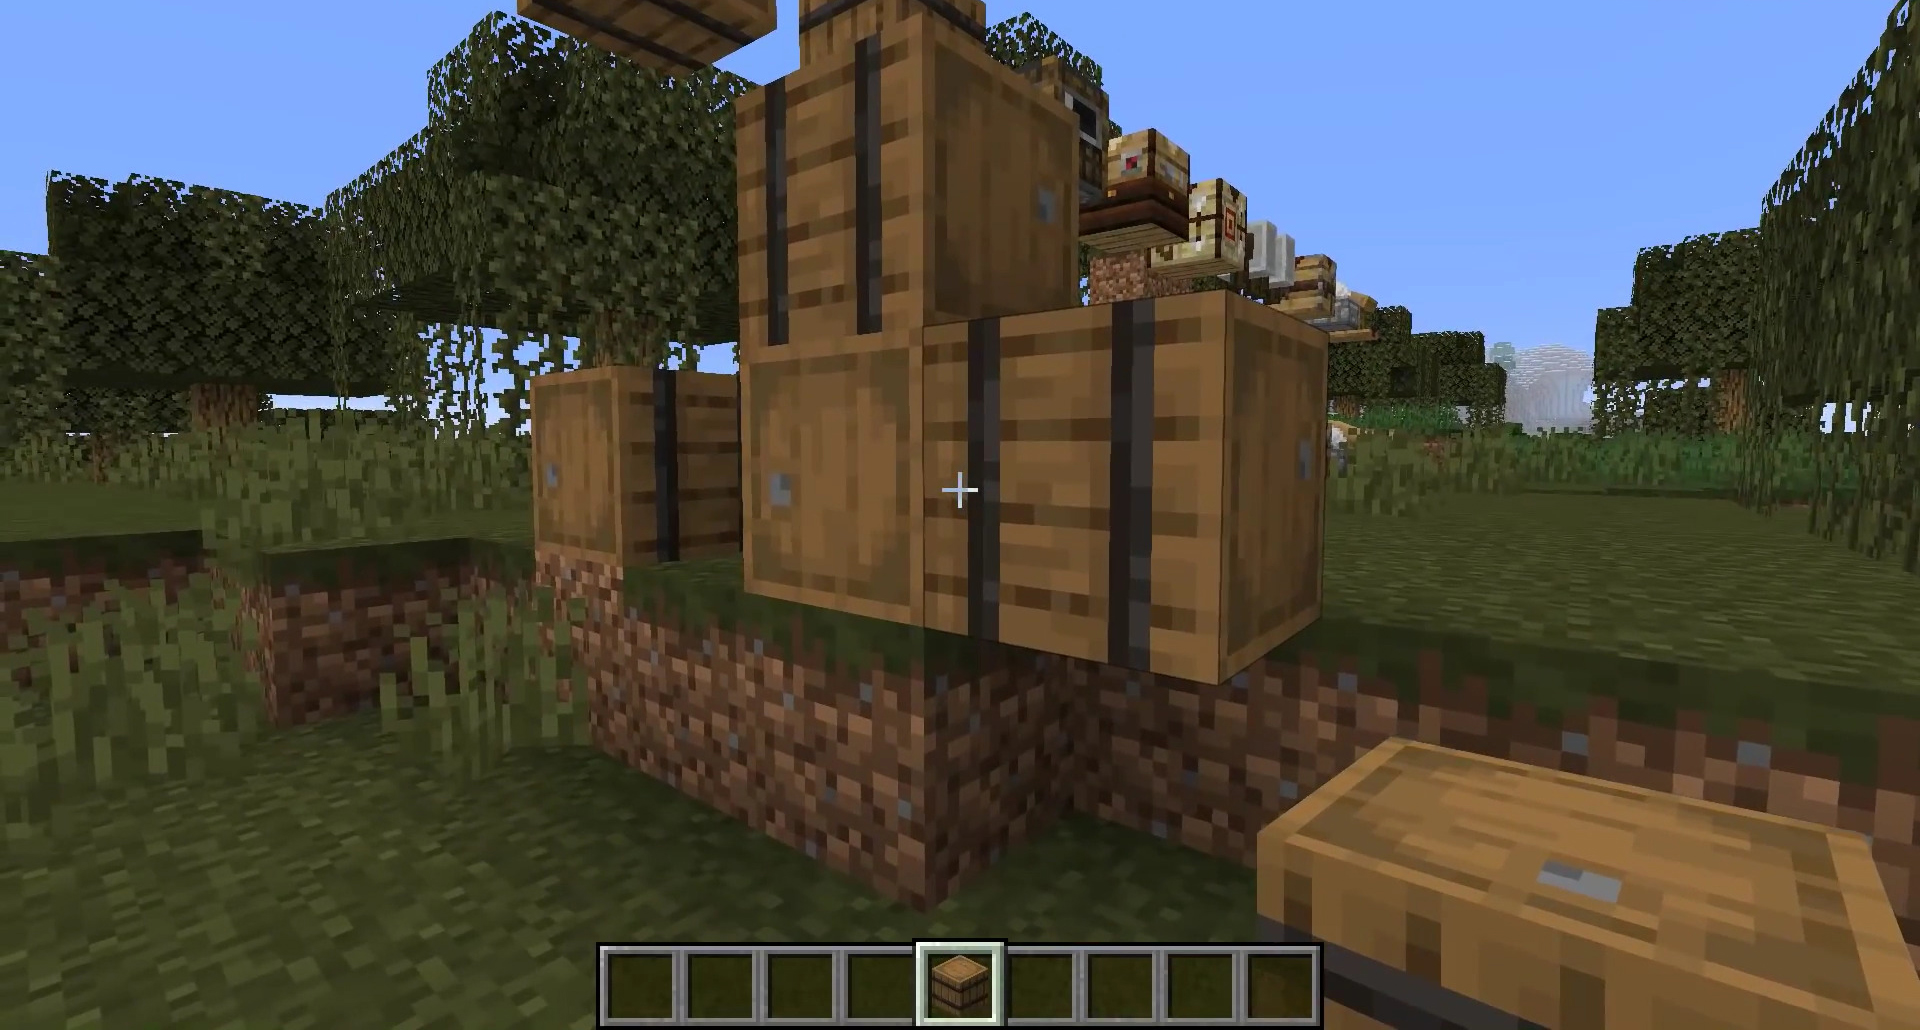 Minecraft 1.14 Snapshot 18w44a Screenshots 3